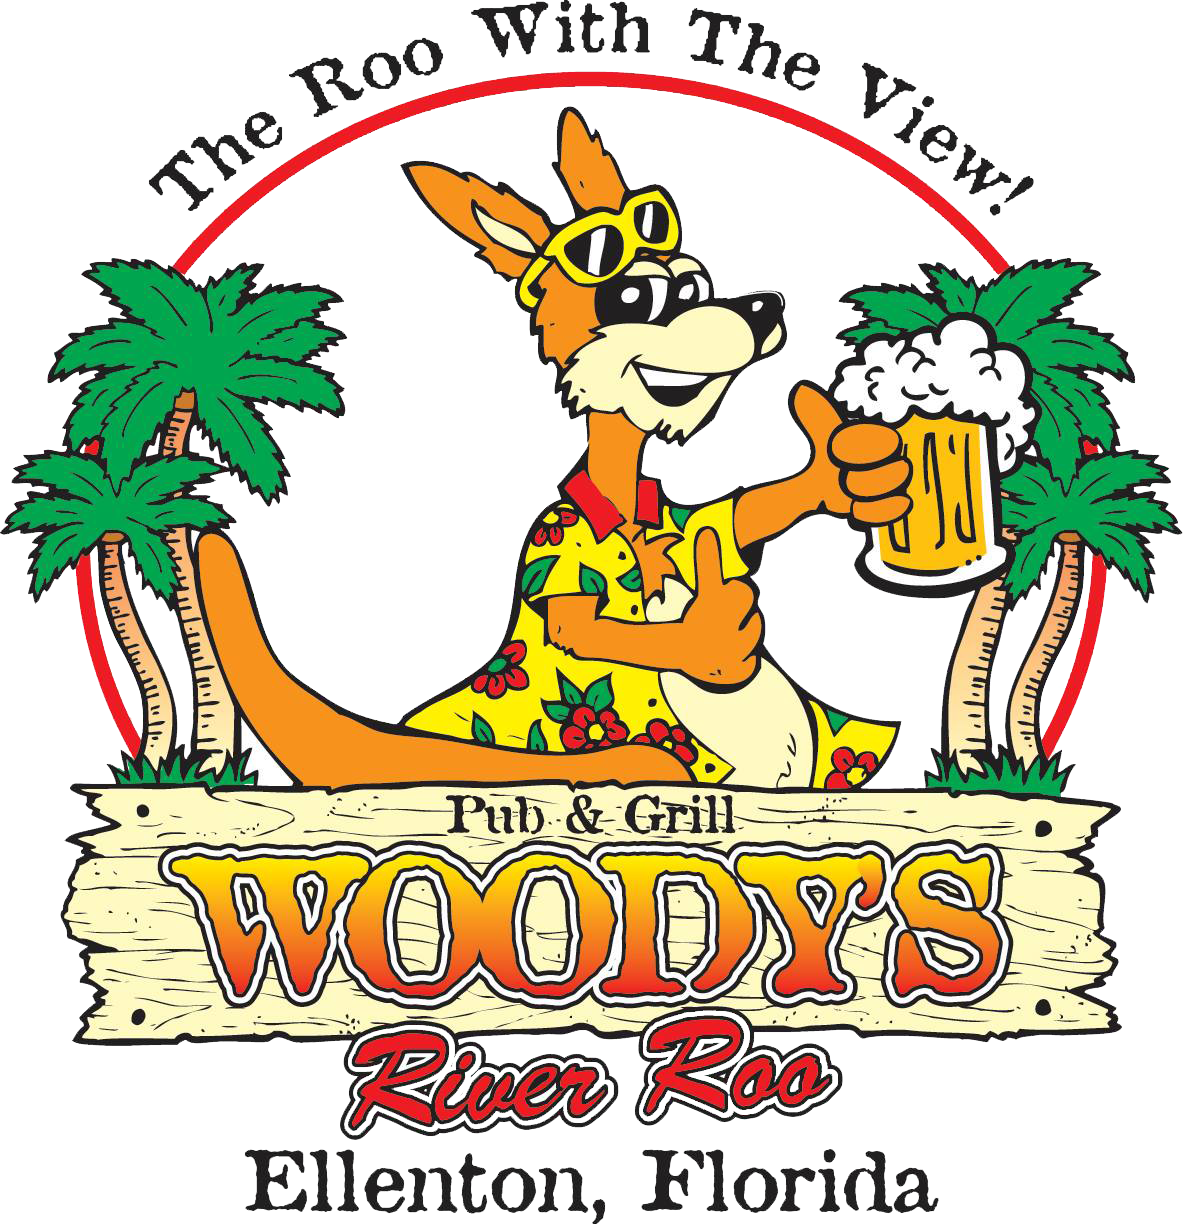 Woody s river roo. Clipart restaurant resturant